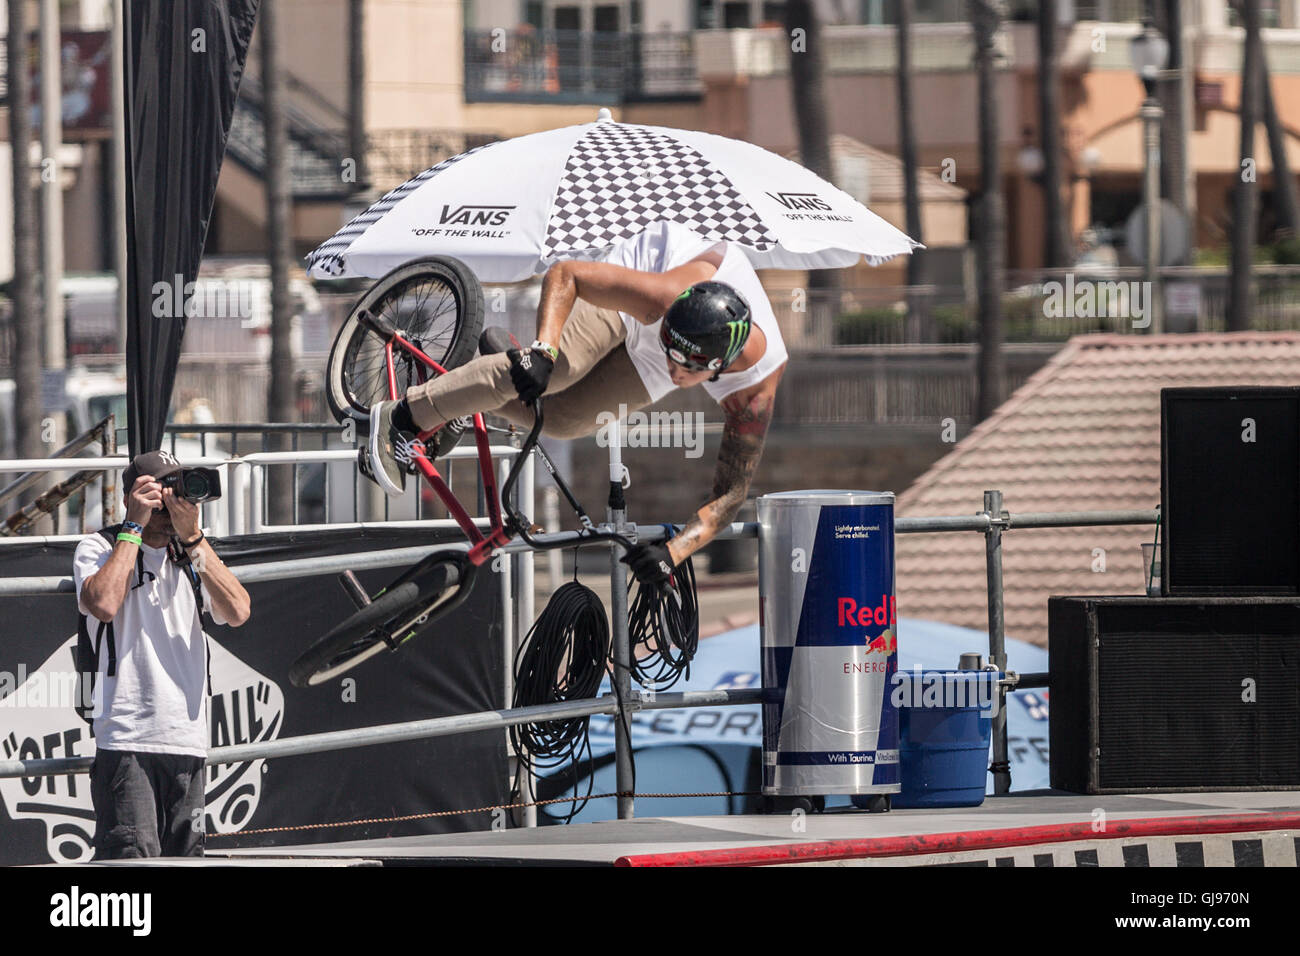 Bicycle stunts at the skatepark at Huntington Beach, California, During the VANS US open competition.July 27 2016 - Stock Image